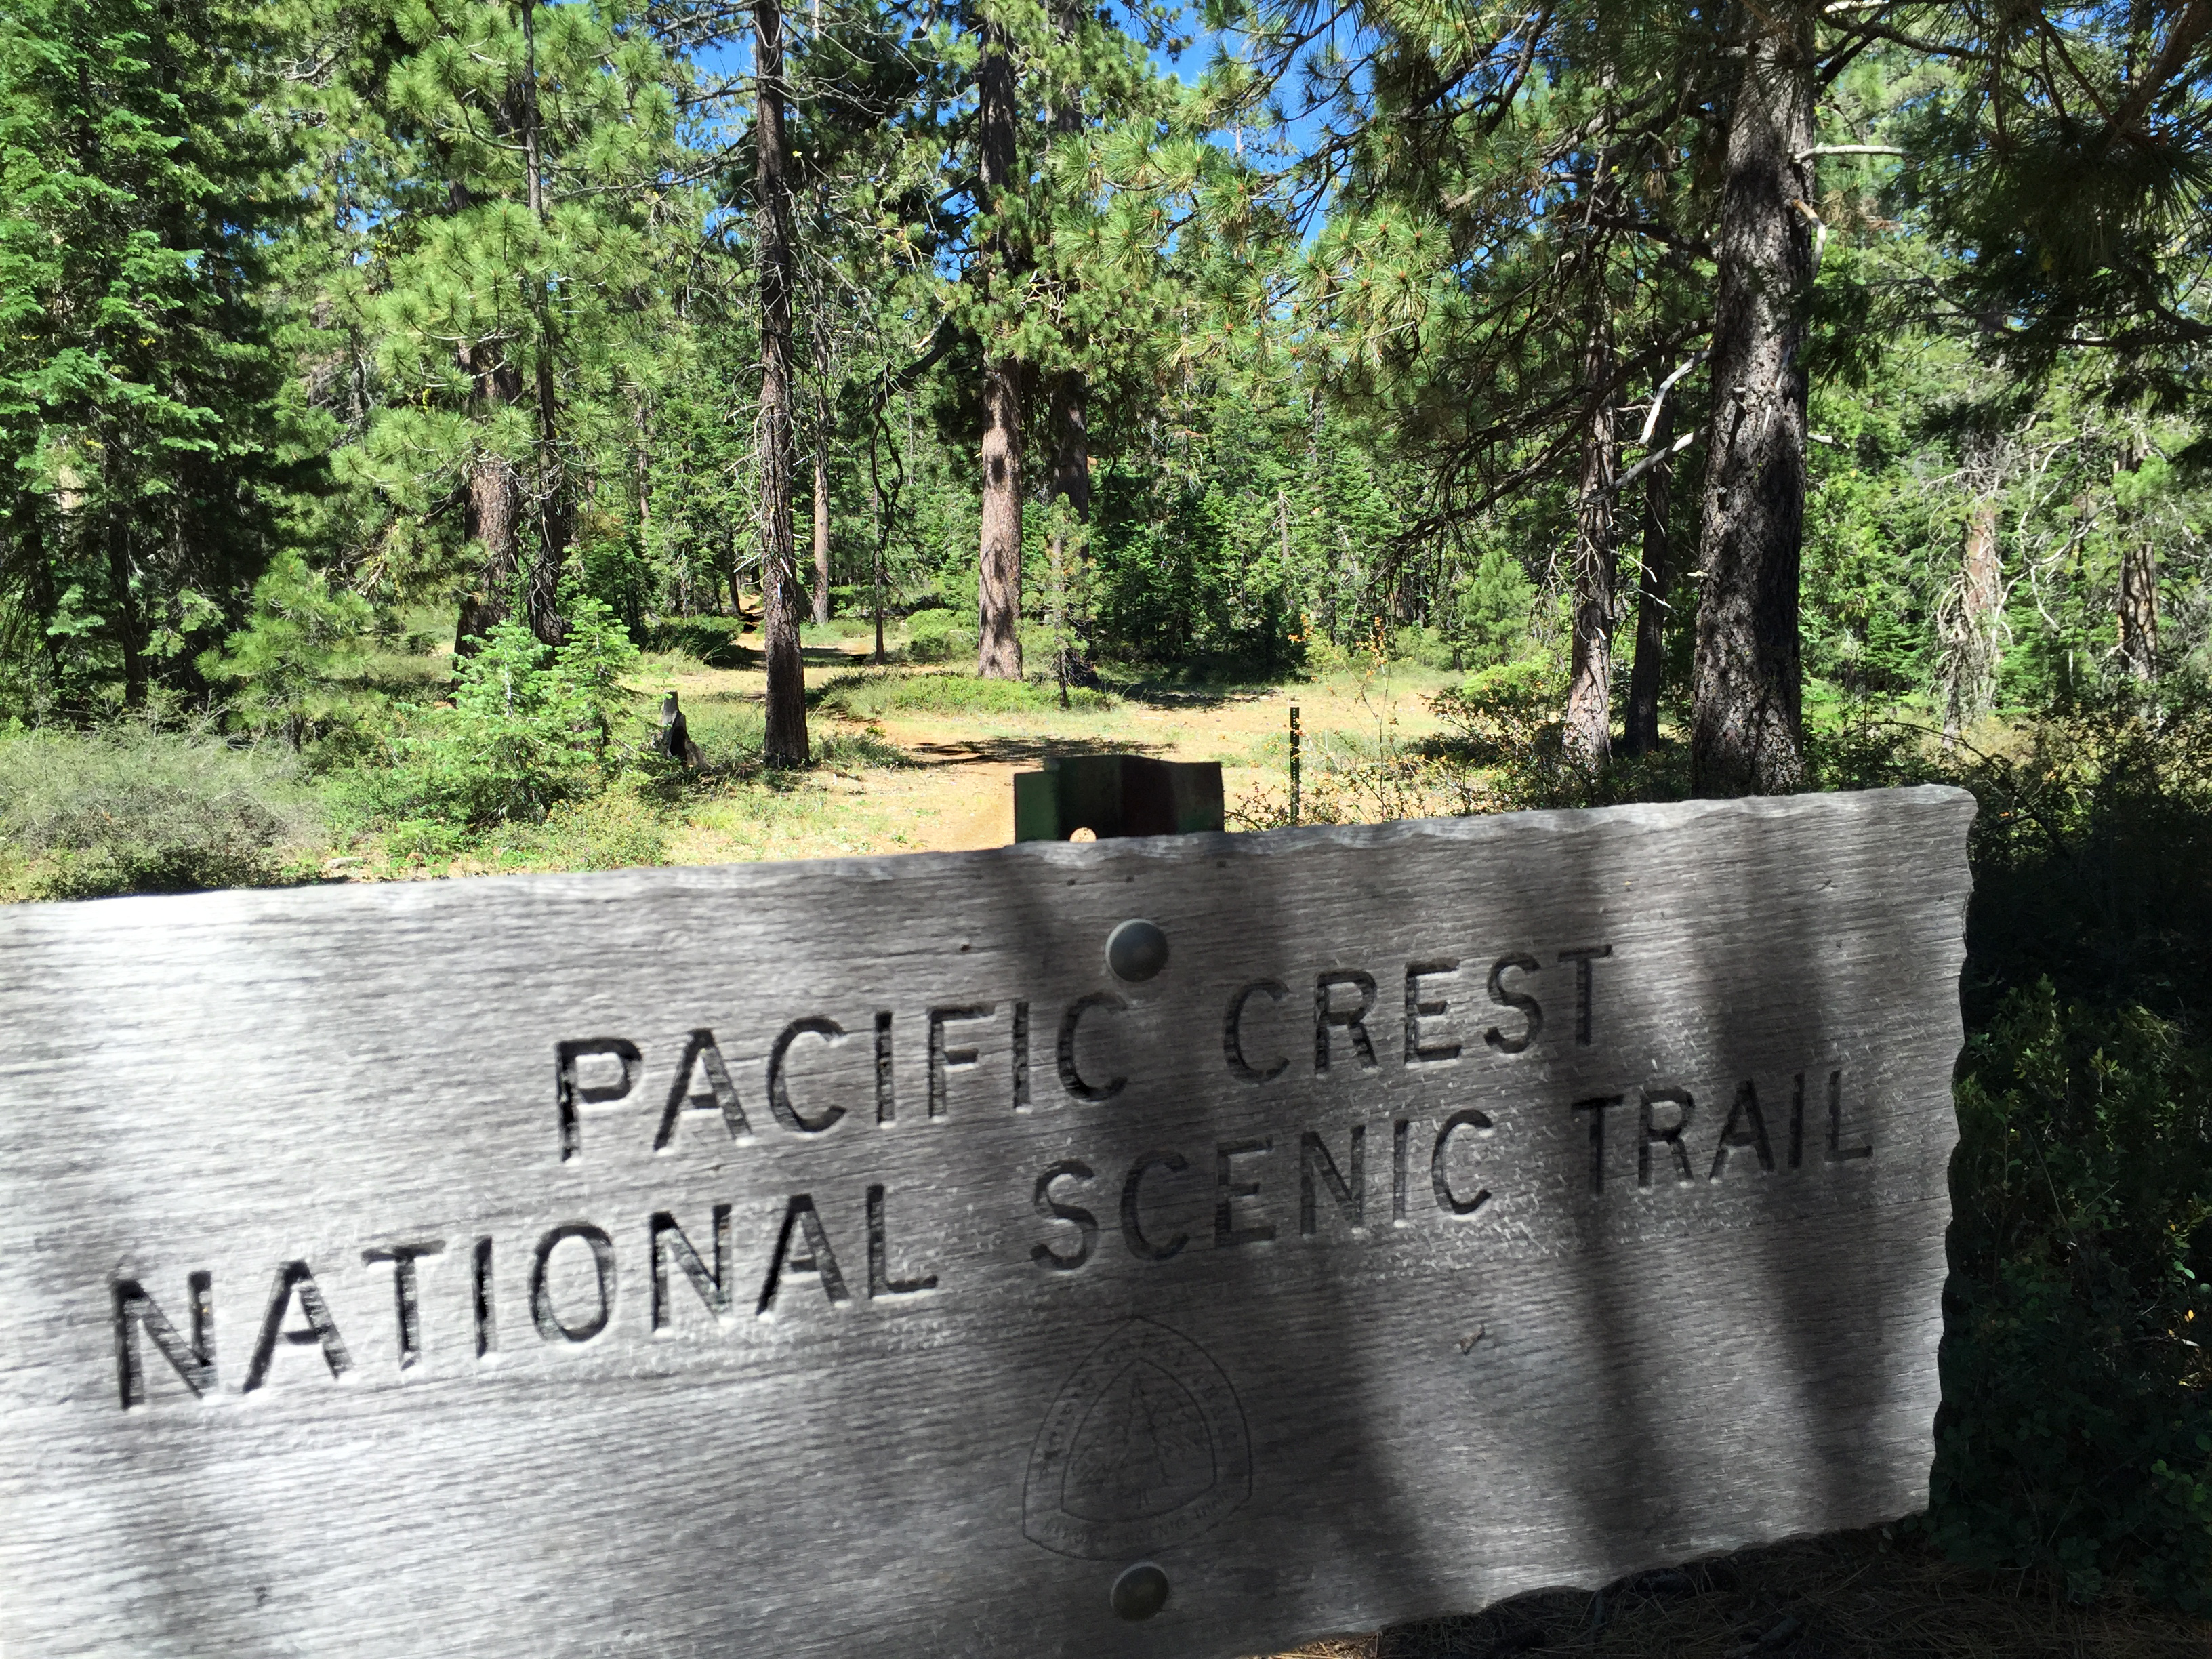 PCT sign fotogail